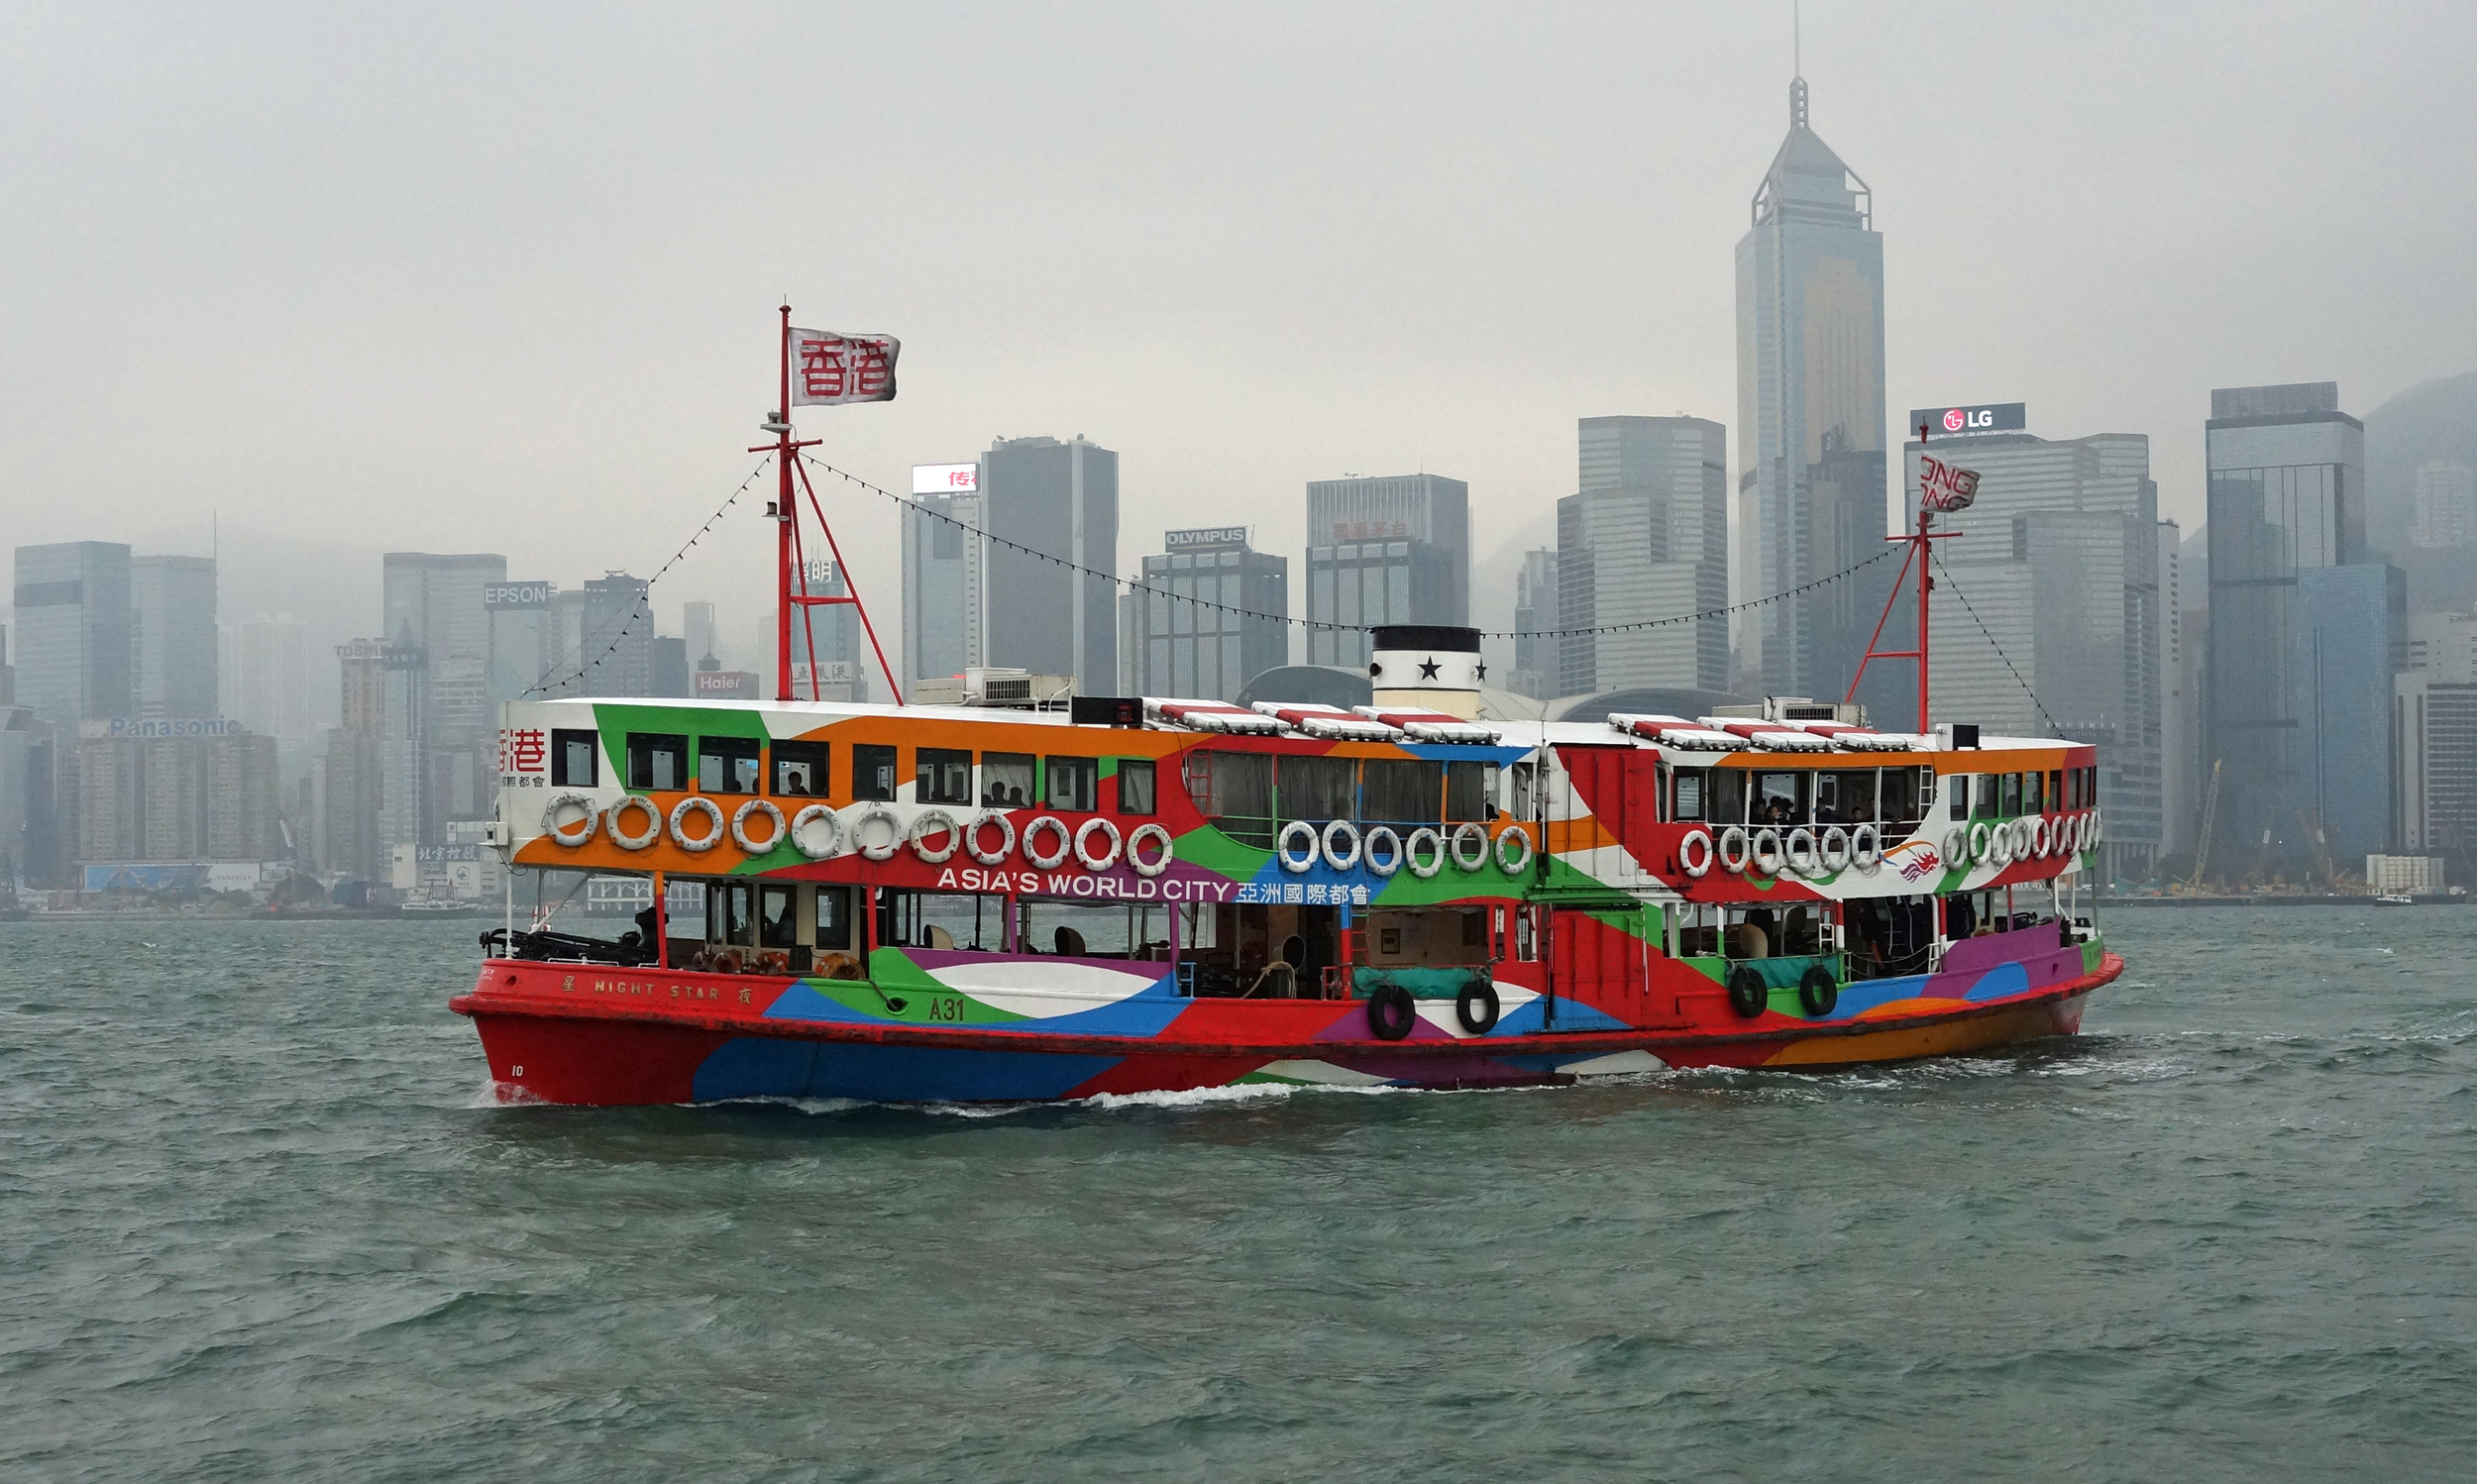 Government advertising on the fabled Star Ferry - supposedly we are Asia's World City and I have to say that it does not feel like it at the moment...